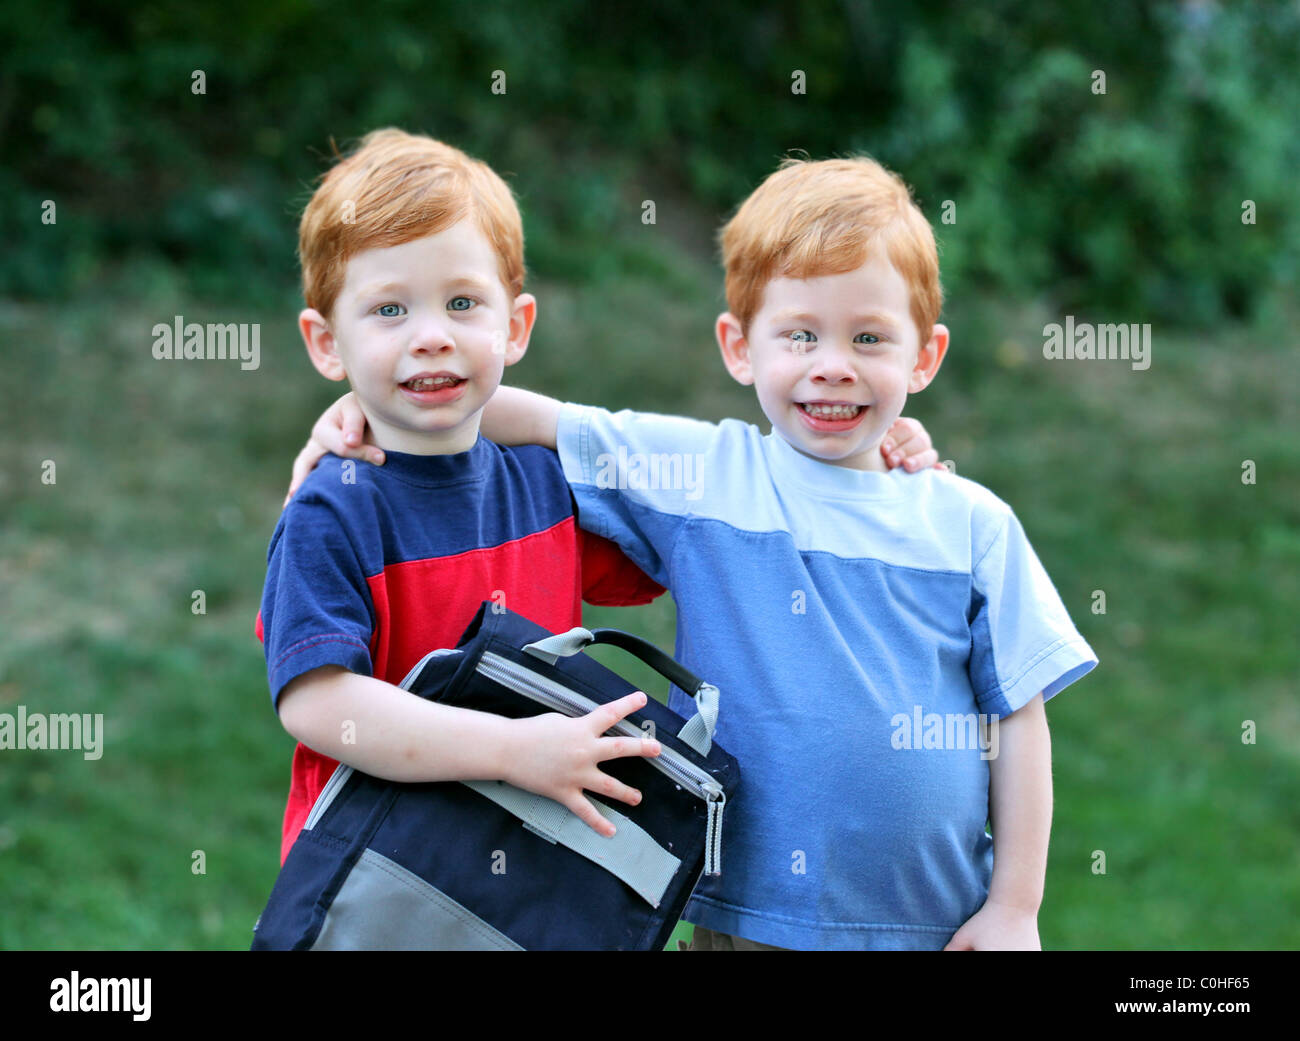 Twin boys with arms around each other outside portrait - Stock Image